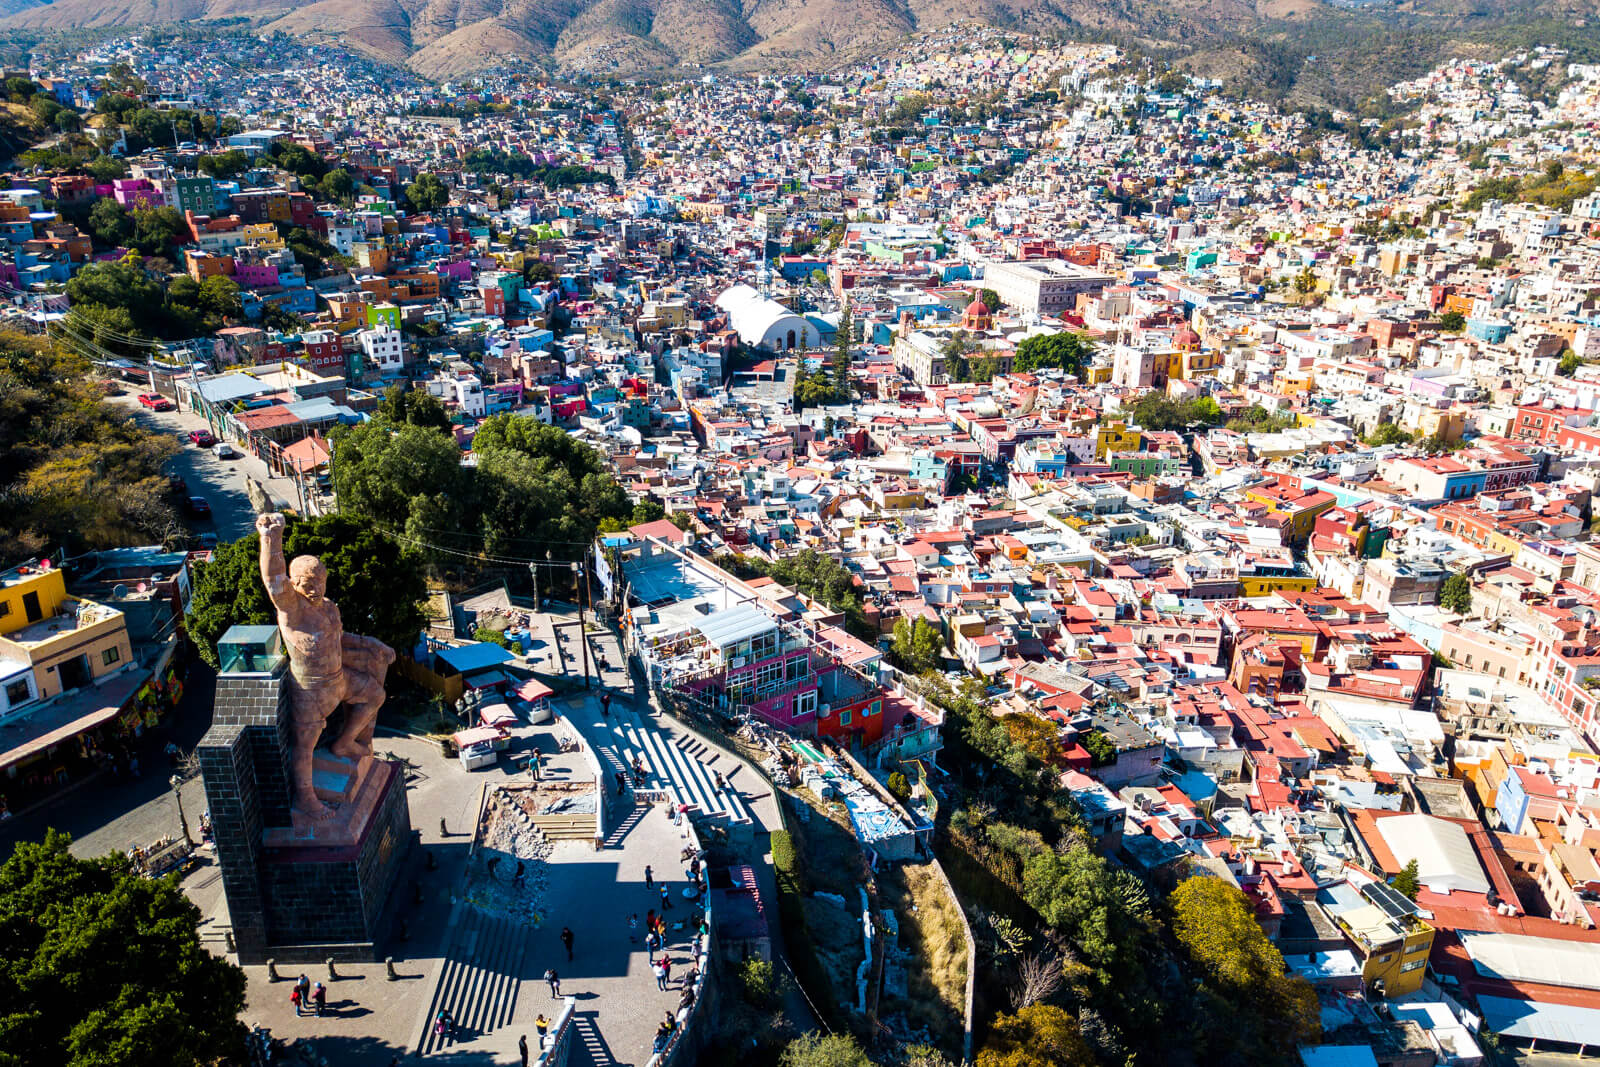 Drone view of the Pipila Lookout in Guanajuato City